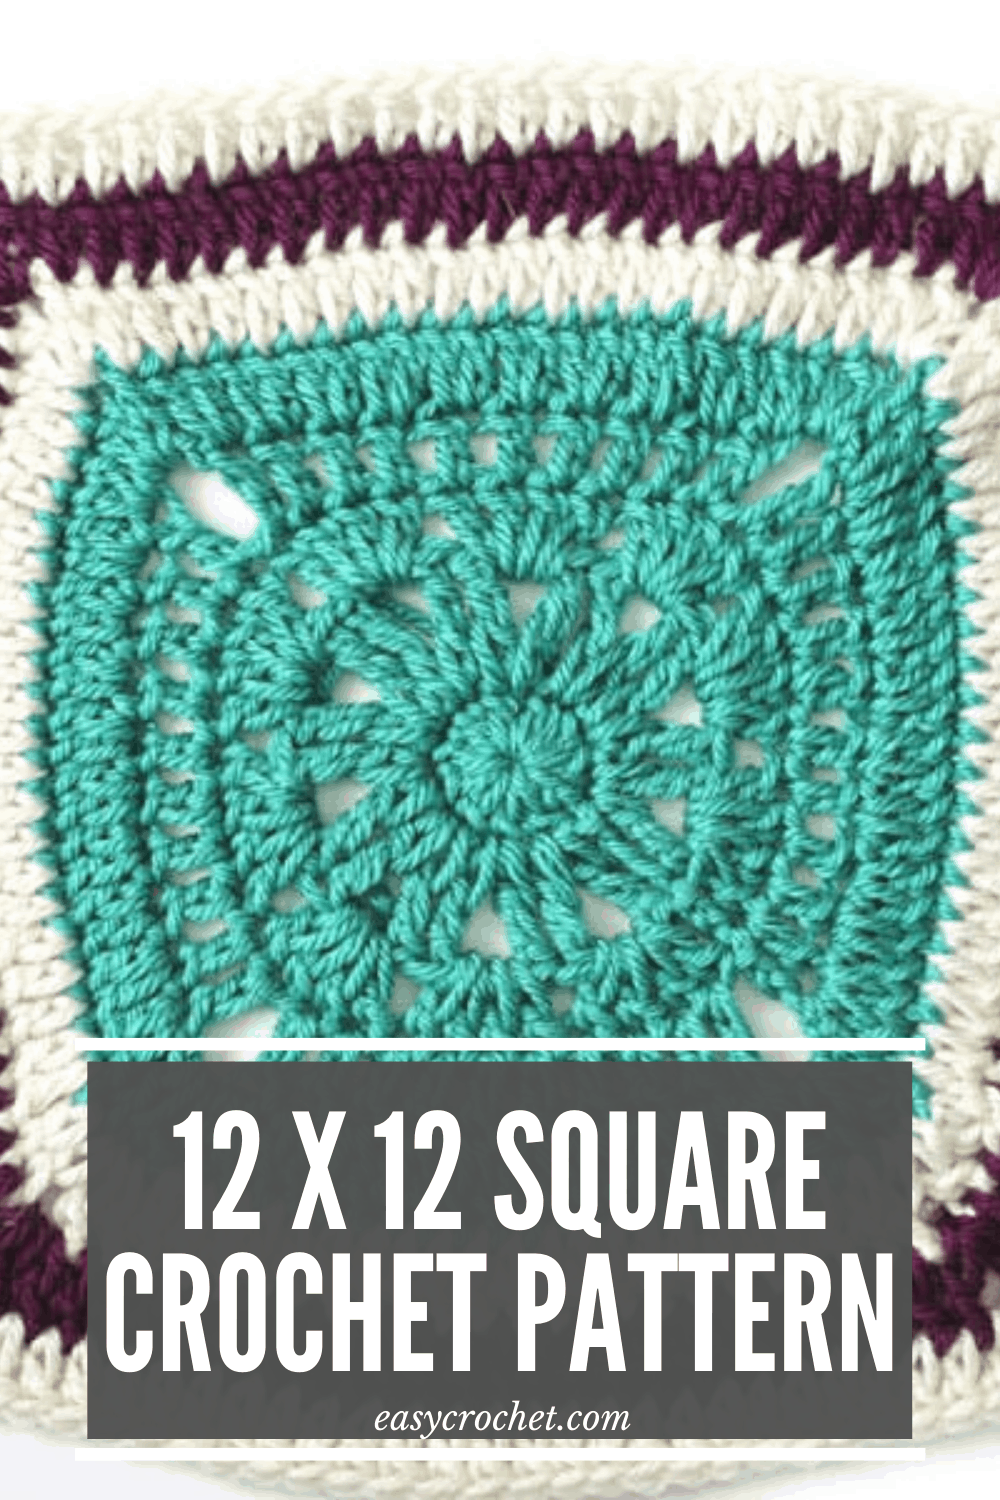 Crochet Blanket Square via @easycrochetcom